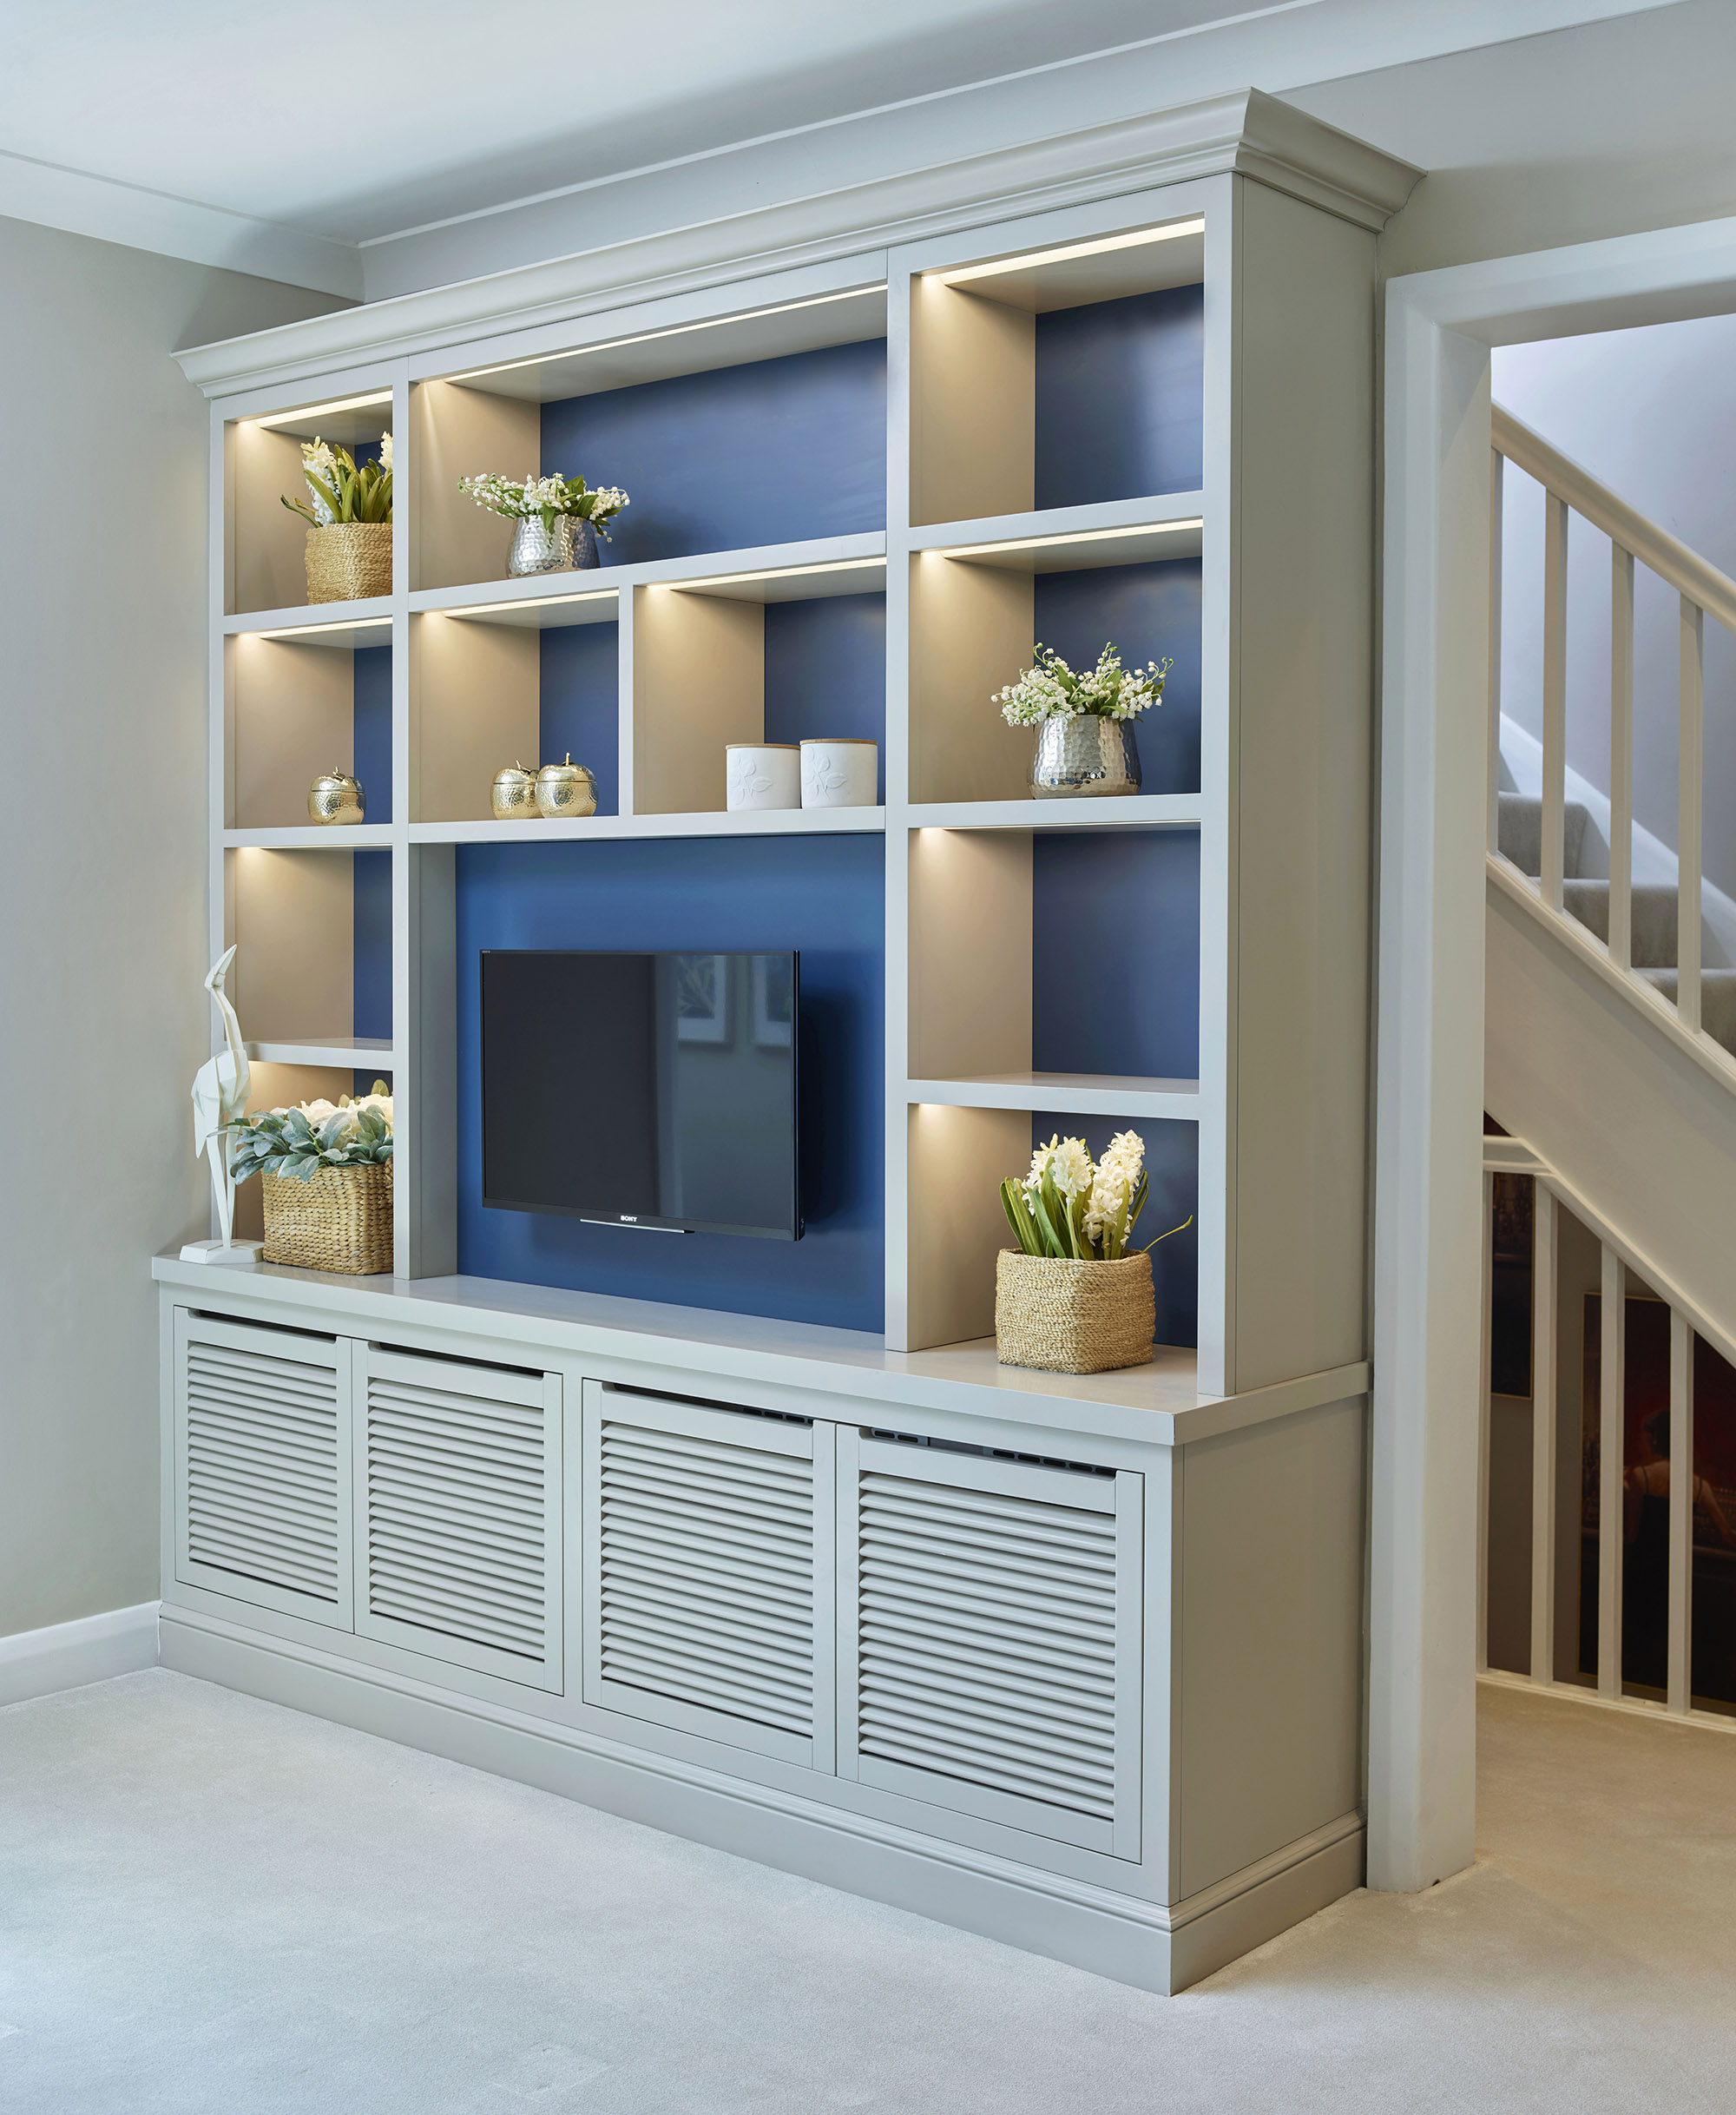 Chelsea Townhouse Wall Cabinets